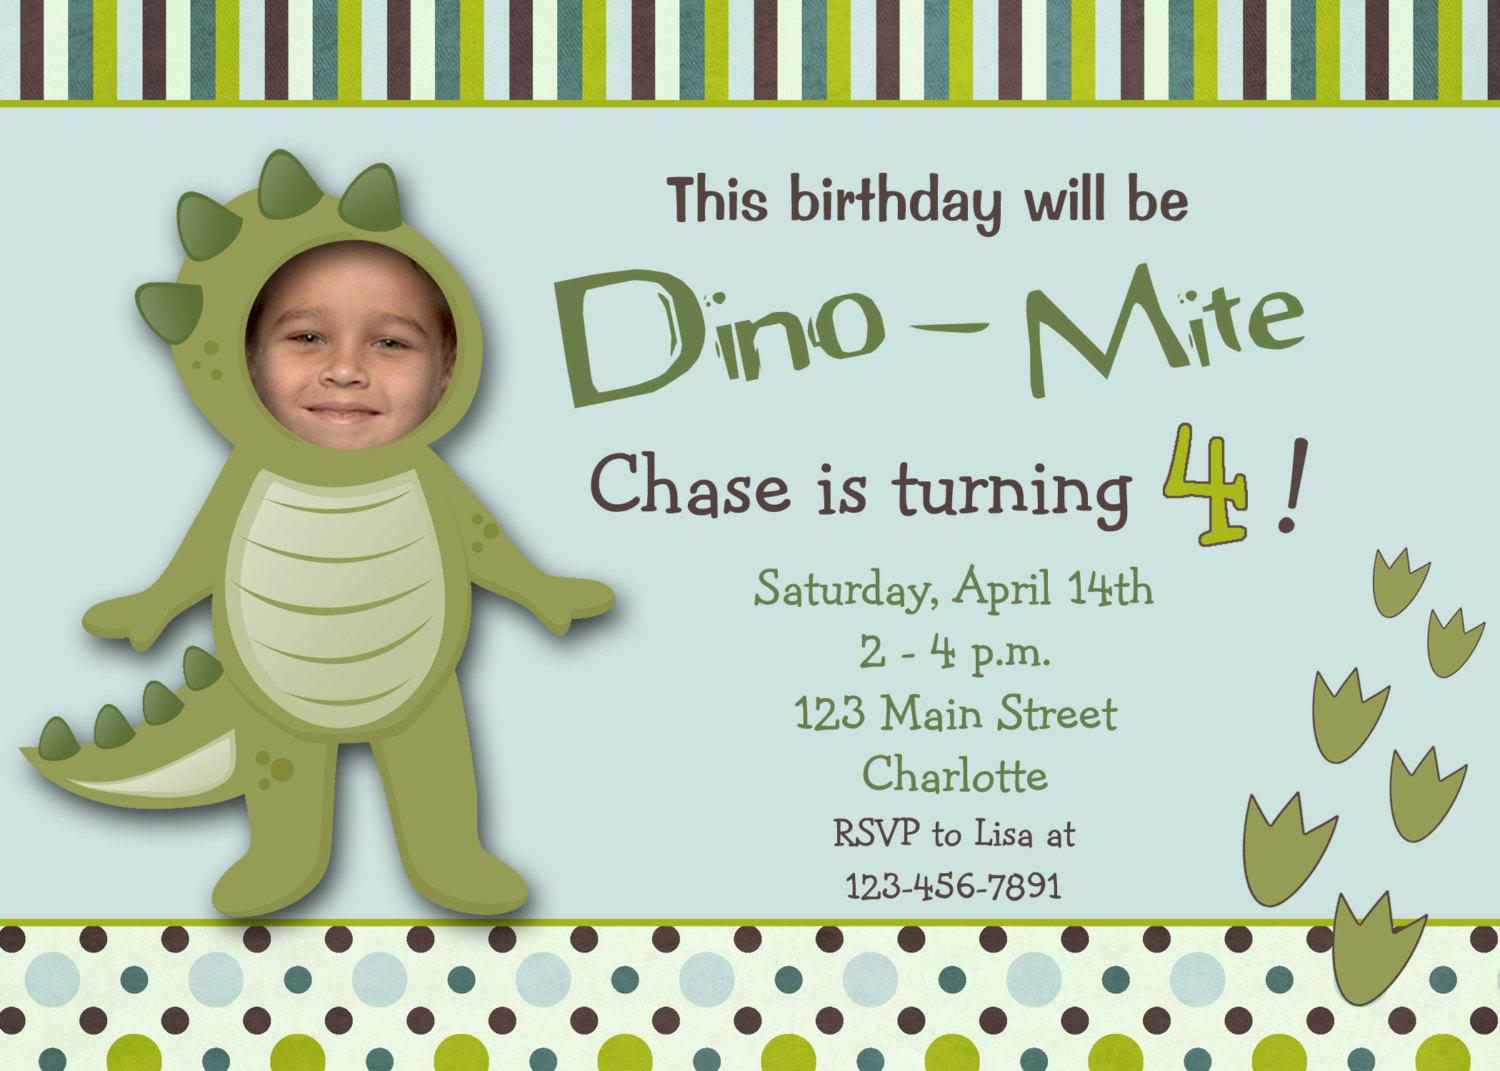 Dinosaur Birthday Invitations For 4th Kids Birthday Party